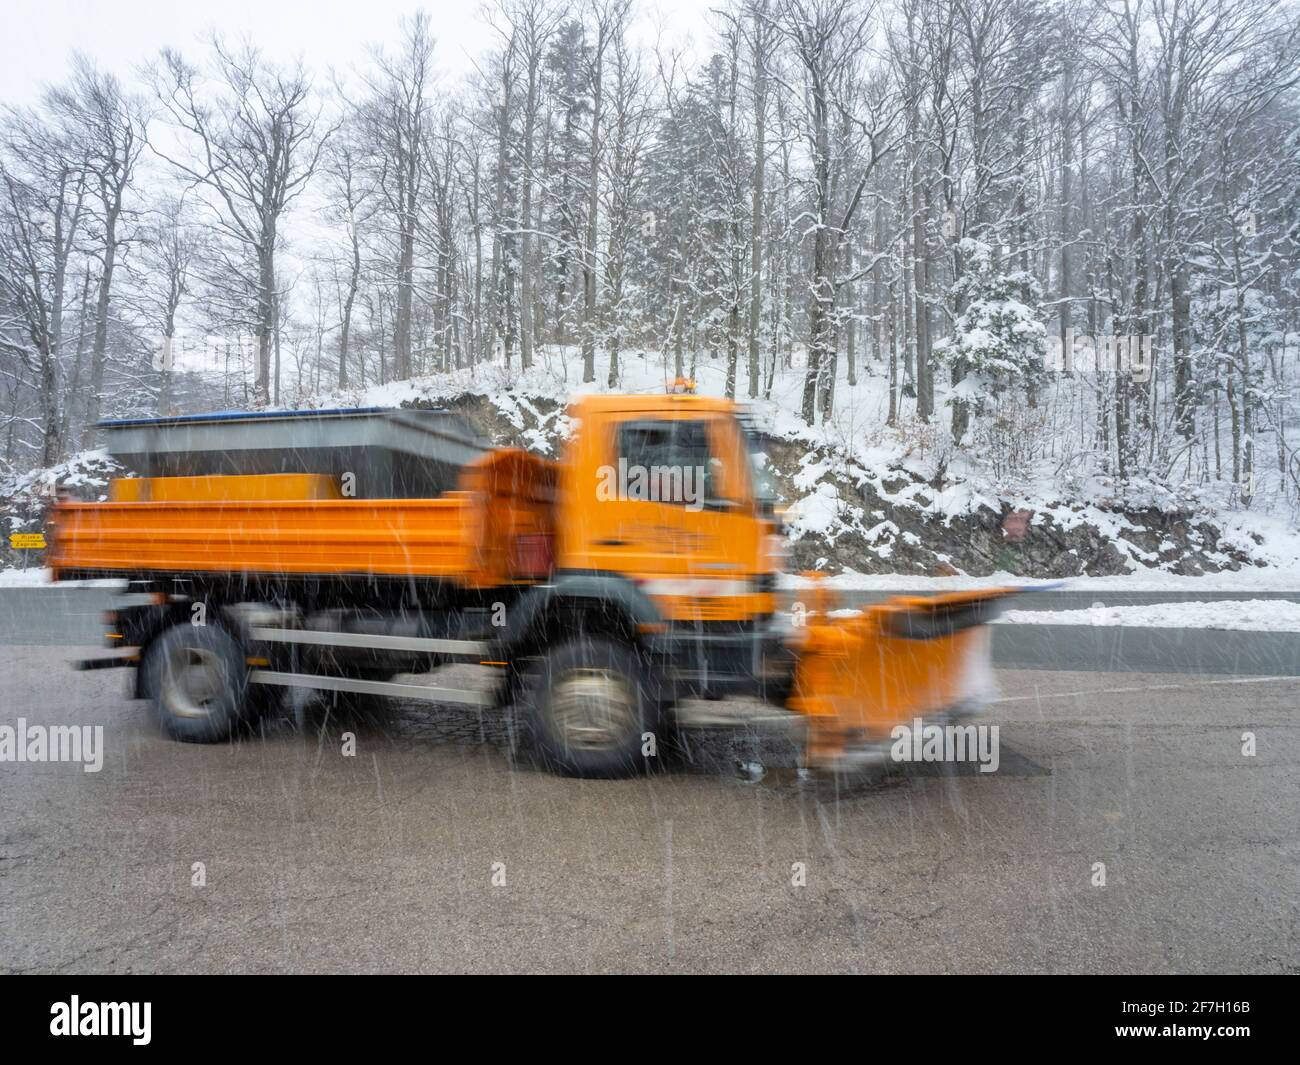 Snow falling road cleaning preparation snowplowing truck passing by going to work intentionally blurry longish exposure Stock Photo